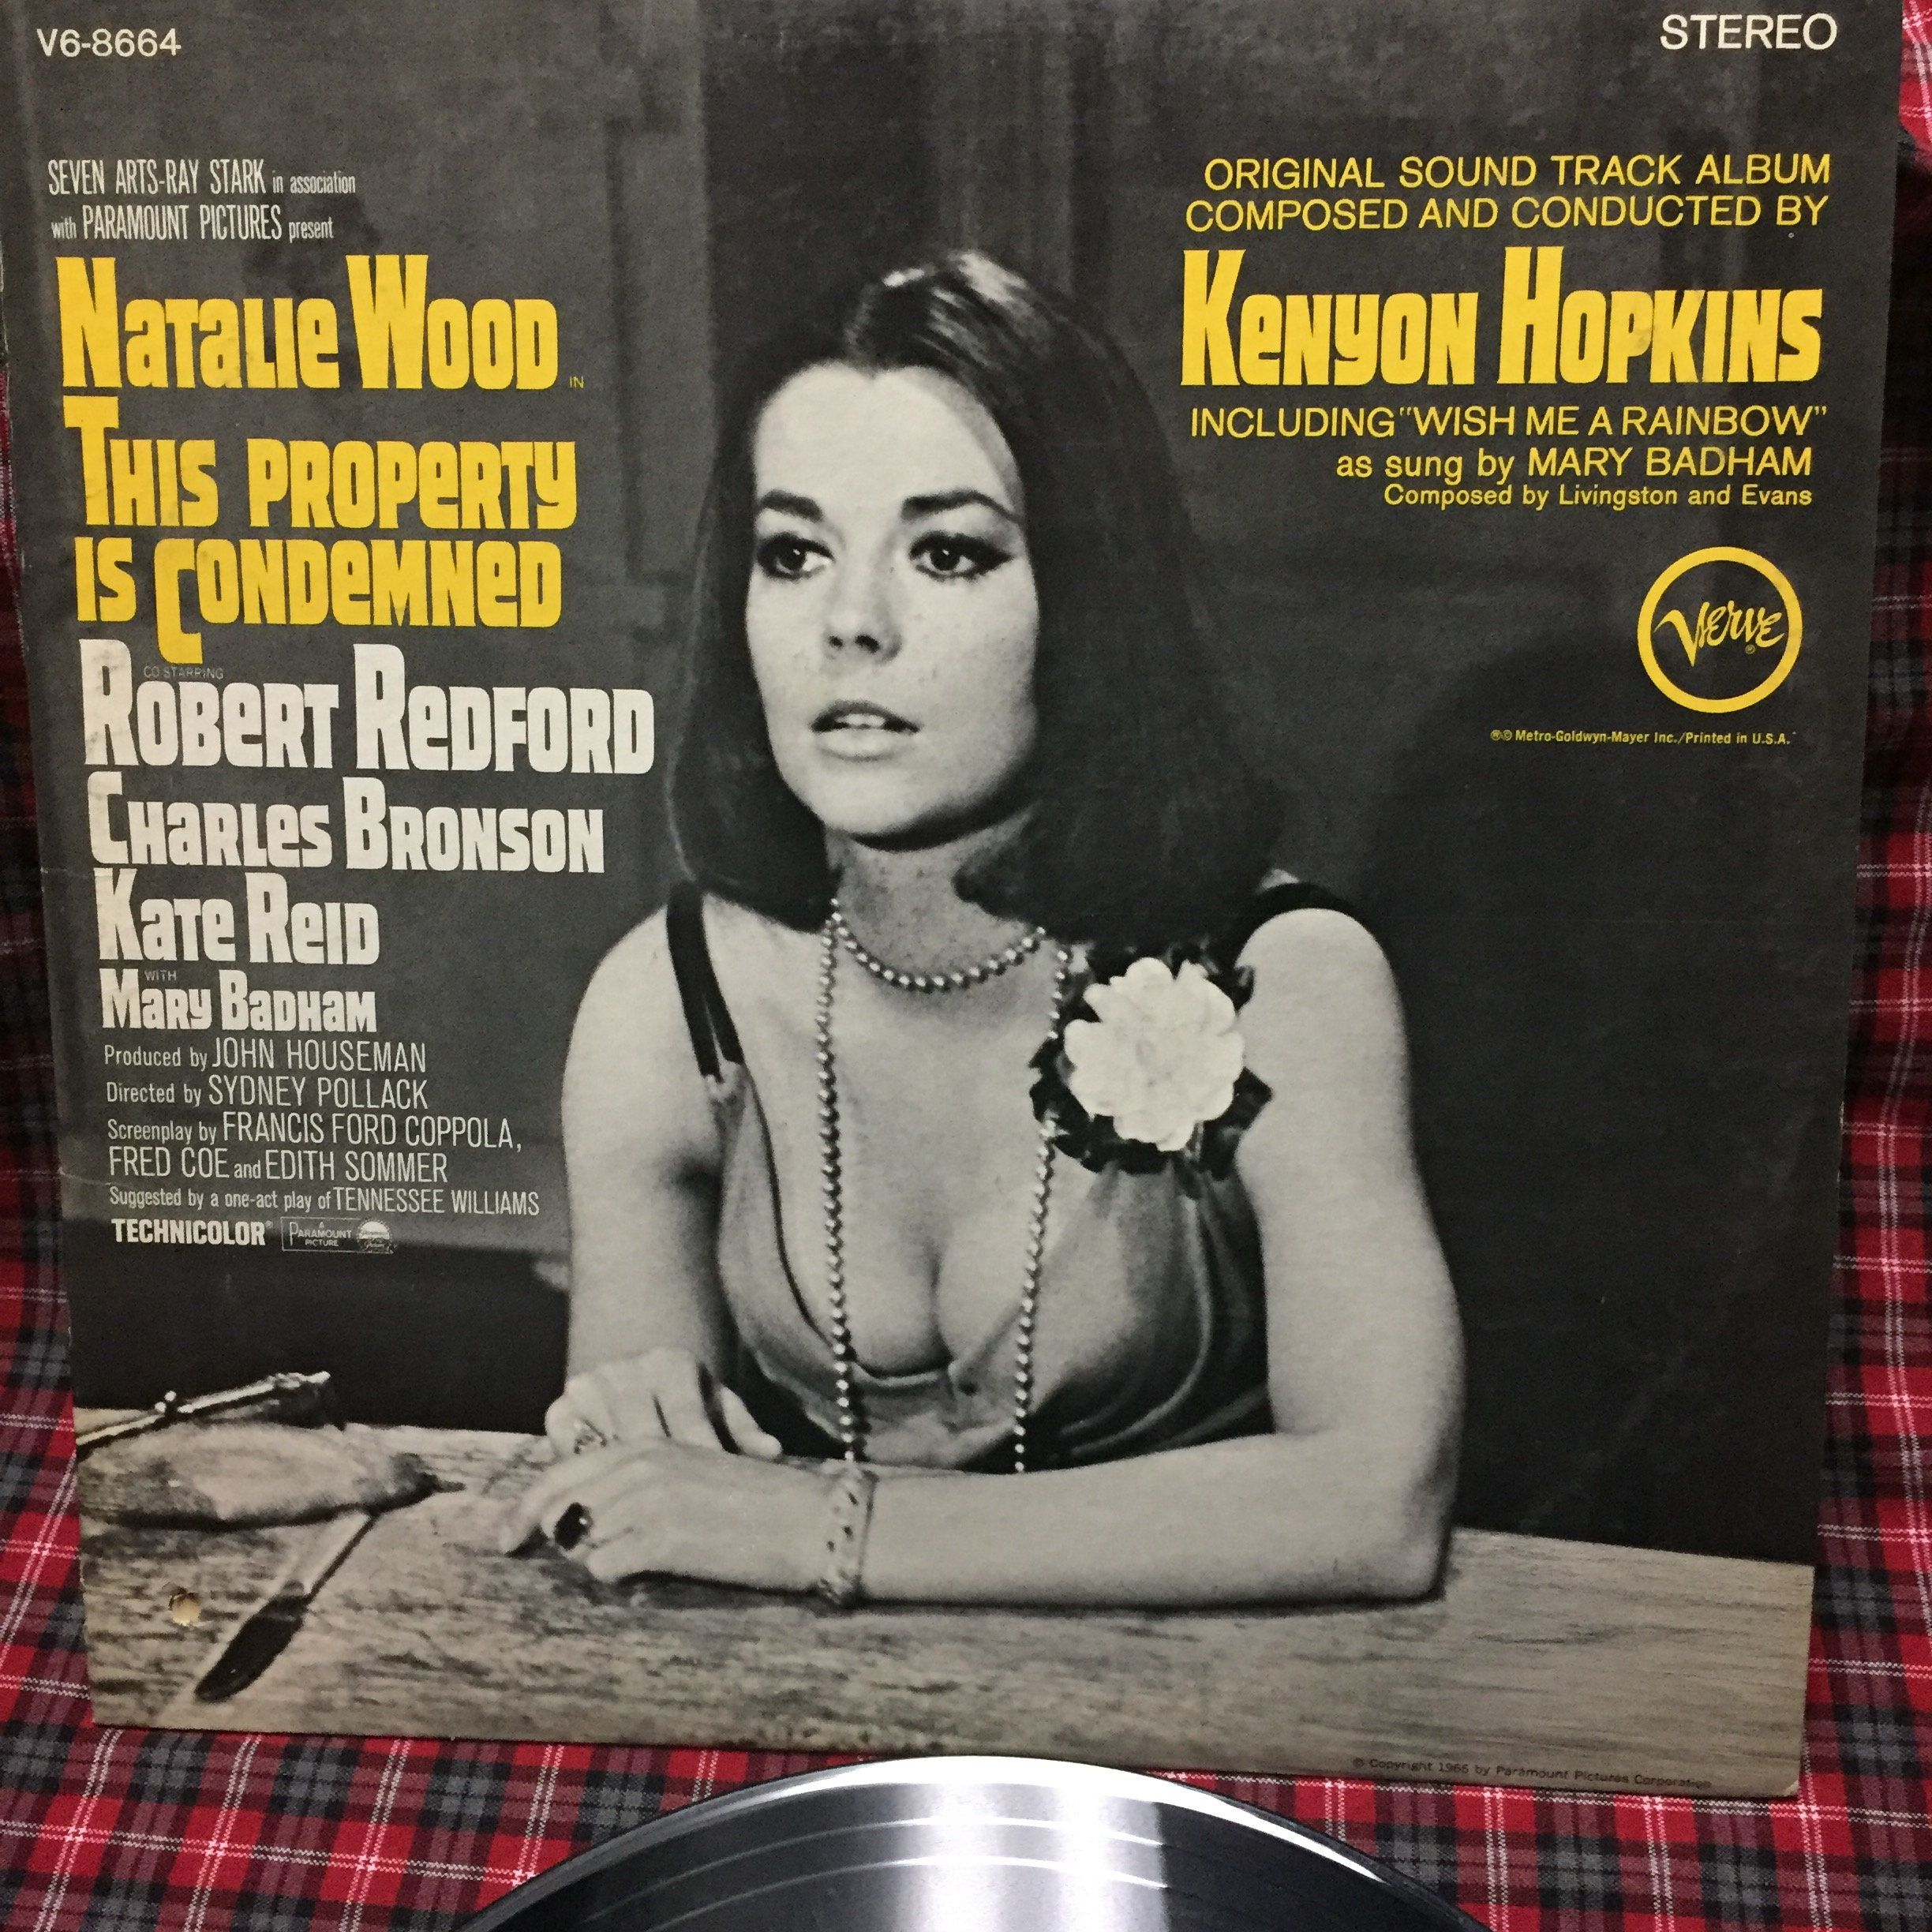 Natalie Wood This Property Is Condemned Vinyl Lp V6 8664 Original Sound Track Recording By Jlsantiques On Etsy Natalie Wood Robert Redford Movies Natalie